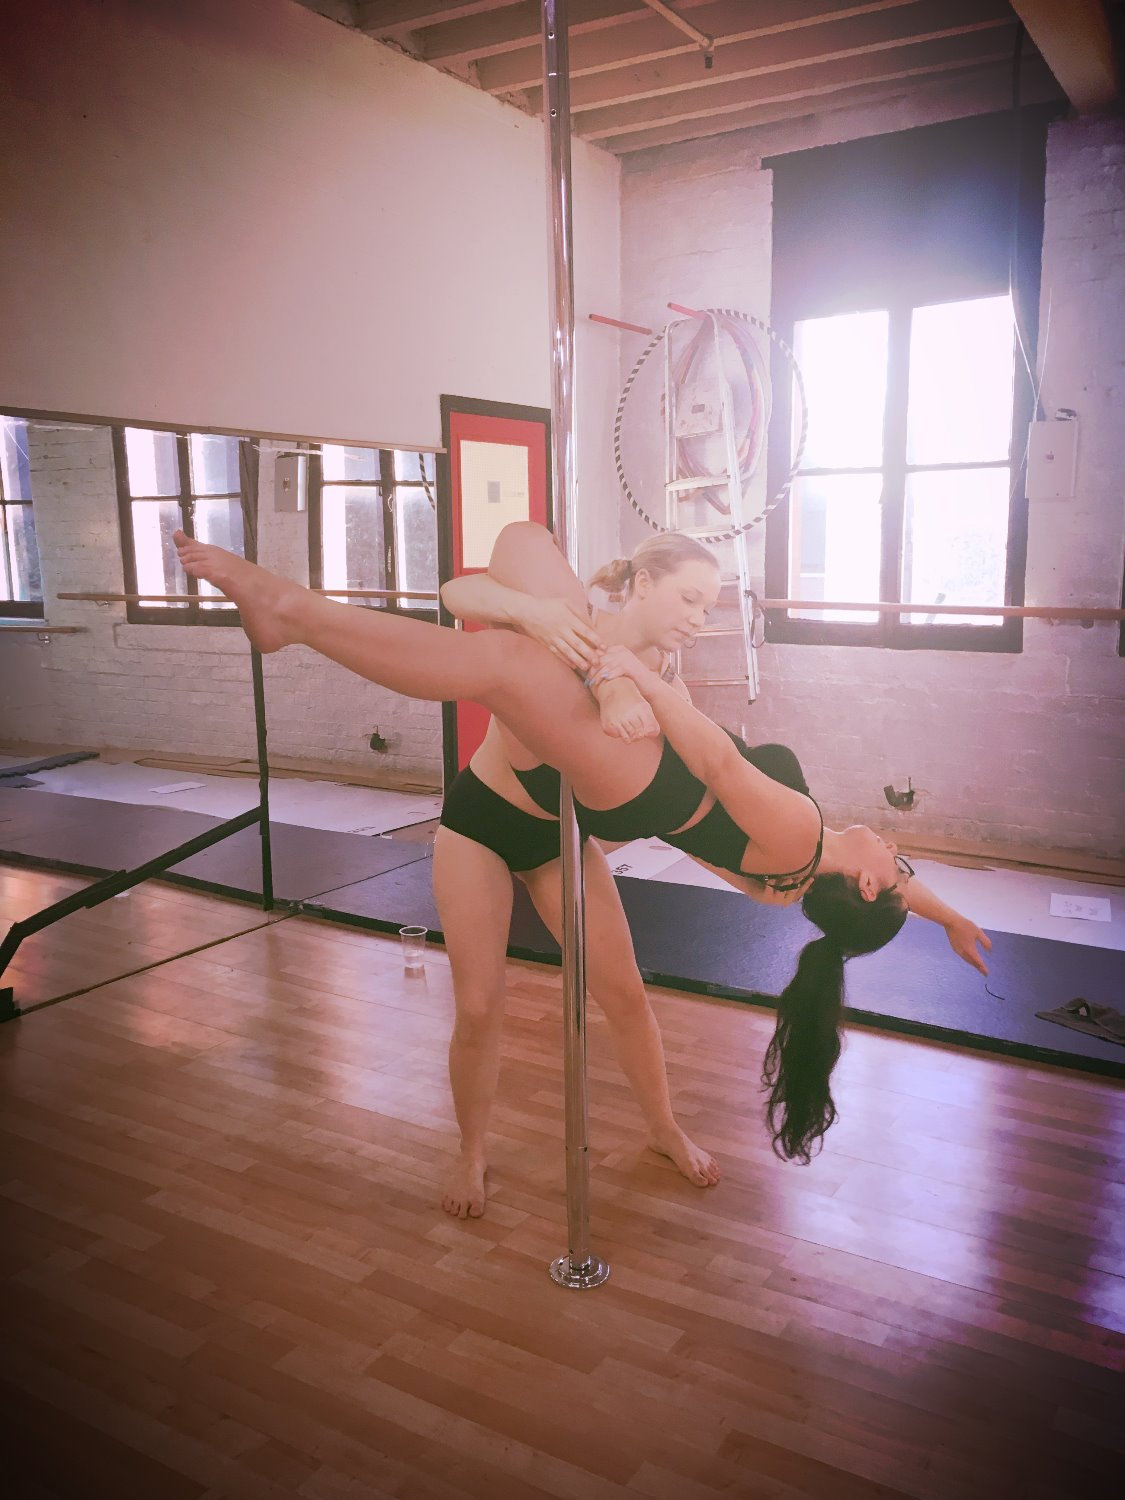 Friday 7.15-8.15pm Beginners Only Pole